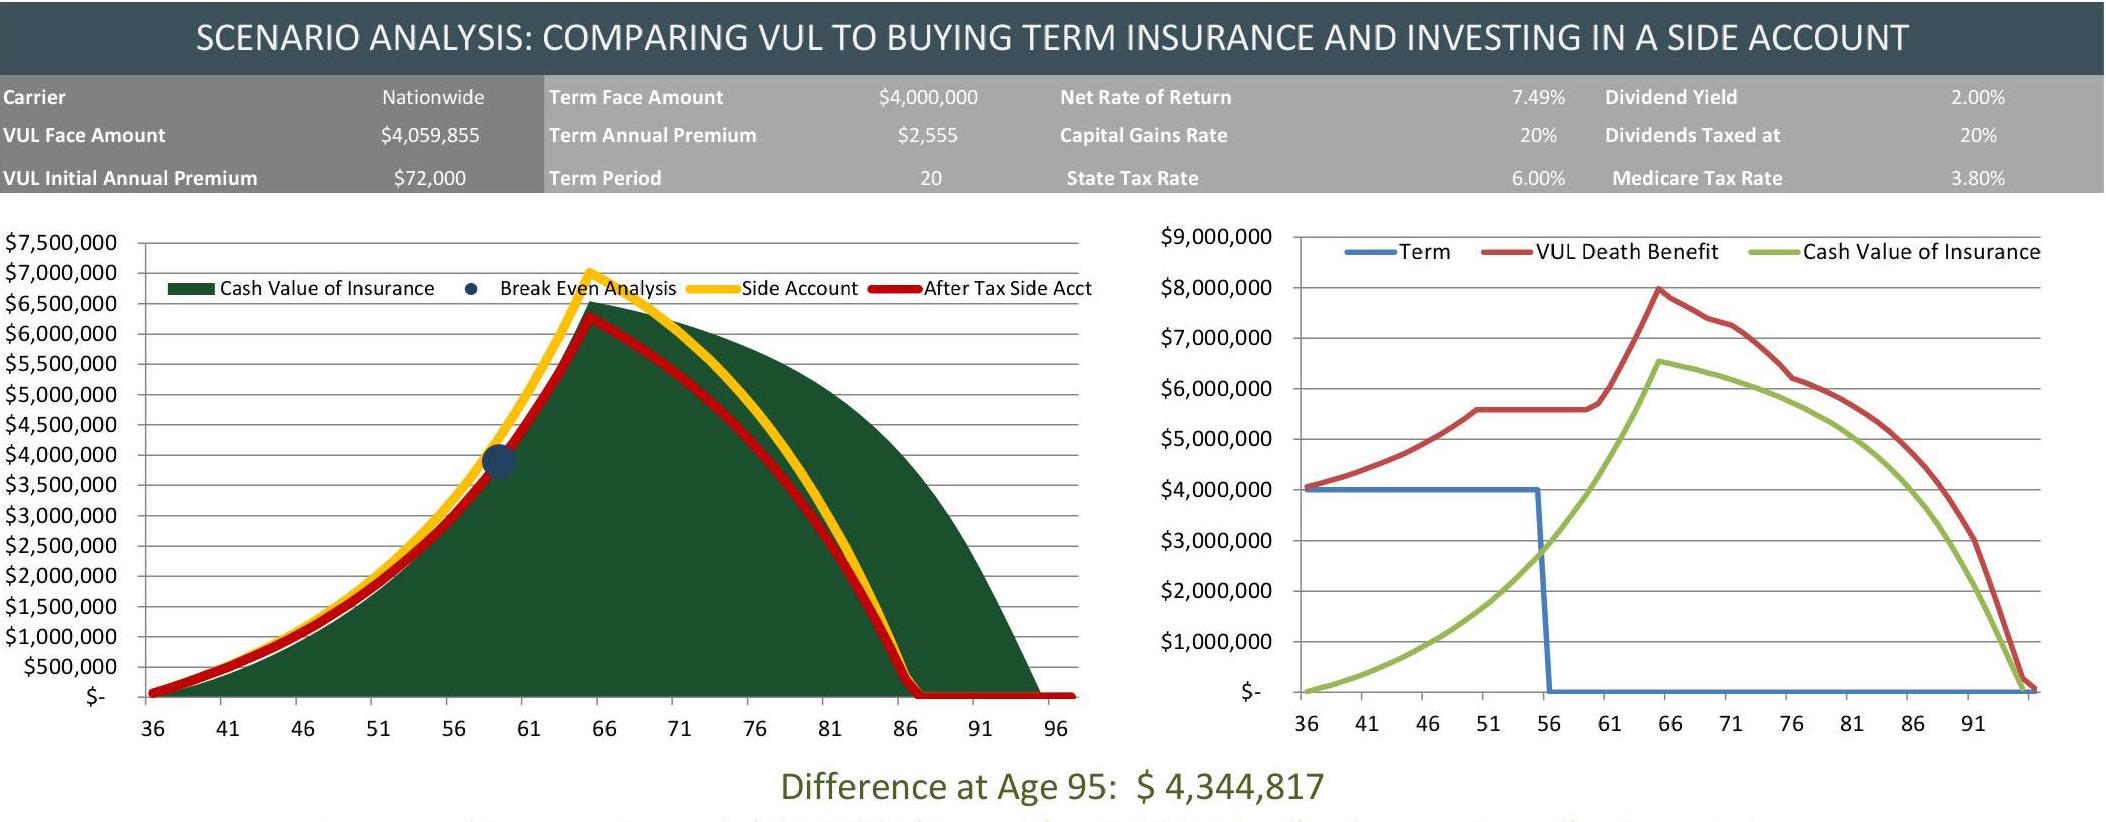 Tiaa Cref Life Insurance Quote Variable Universal Life Insurance As A Retirement Account  The